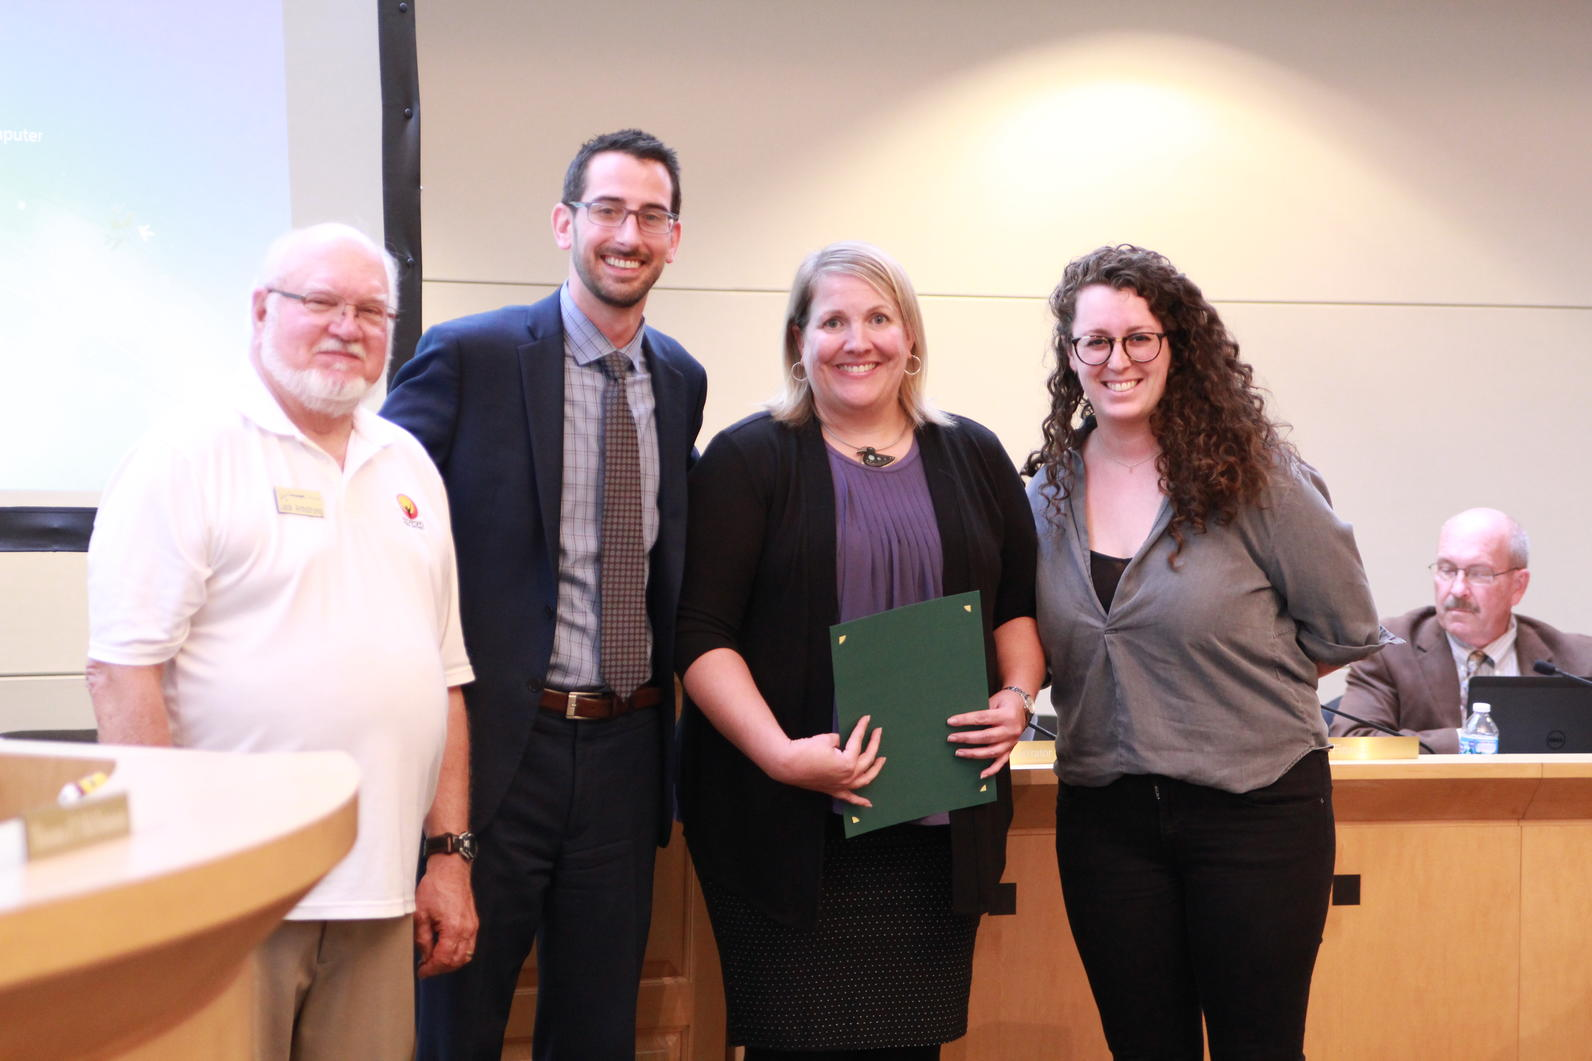 """Sinnissippi Audubon Society receives their """"Year of the Bird Proclamation"""" from City of Rockford, Illinois"""